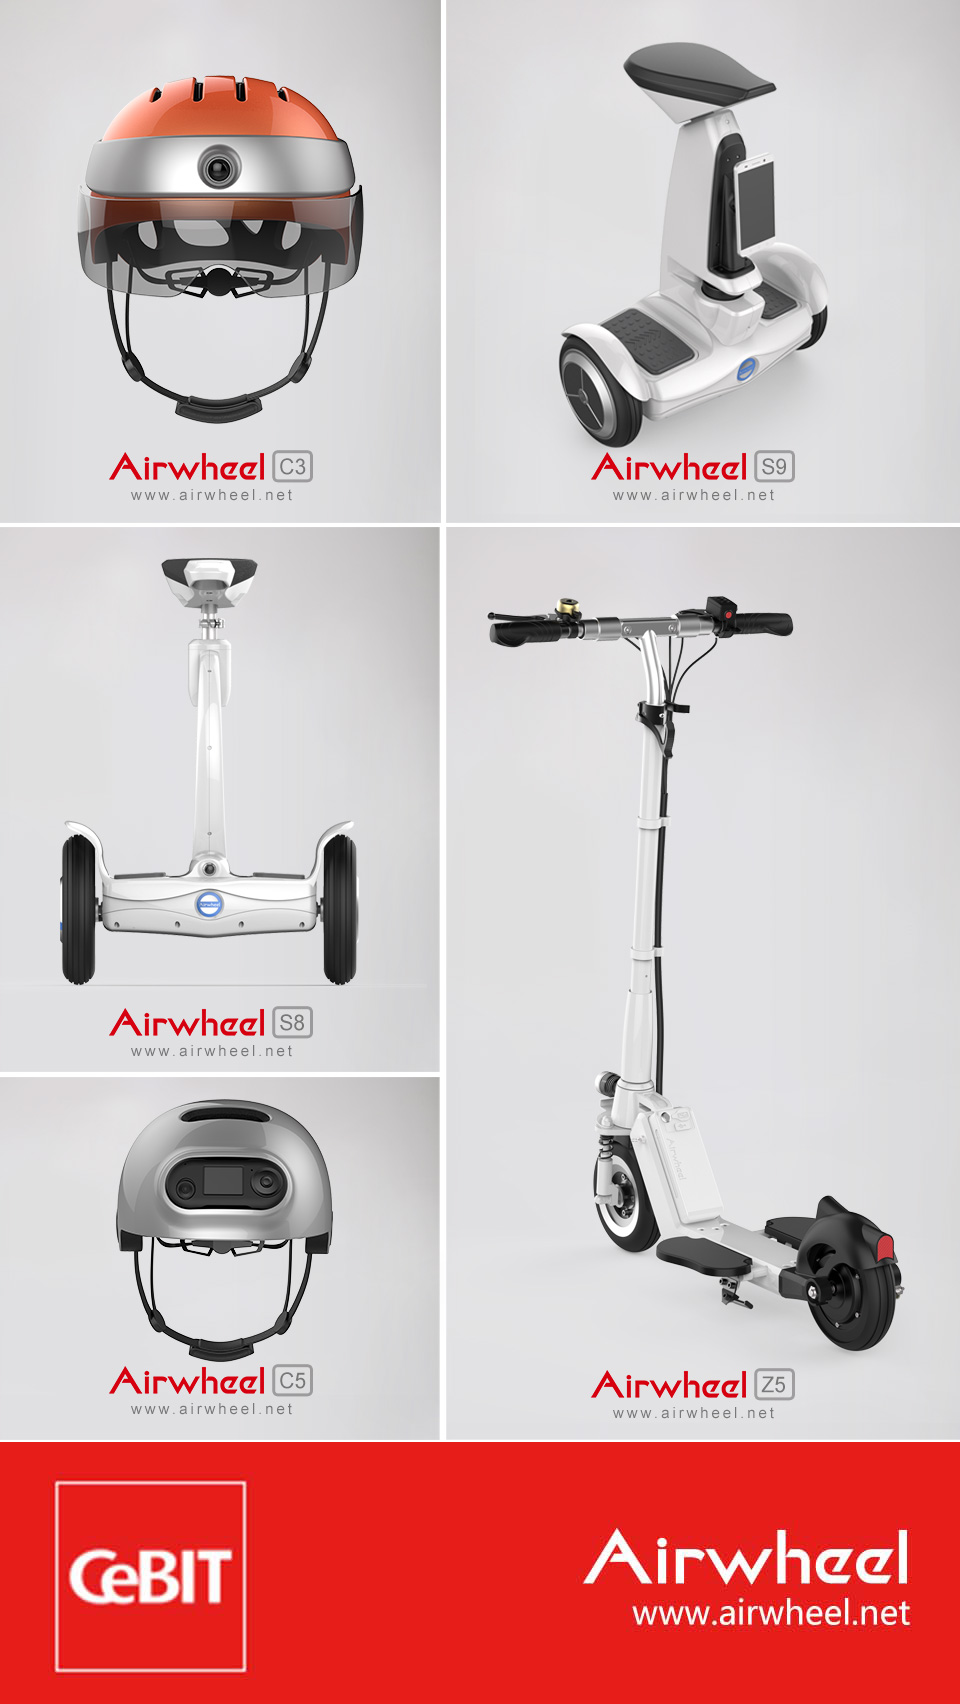 http://www.airwheel.net/scooters/airwheel_cebit_scooter.jpg